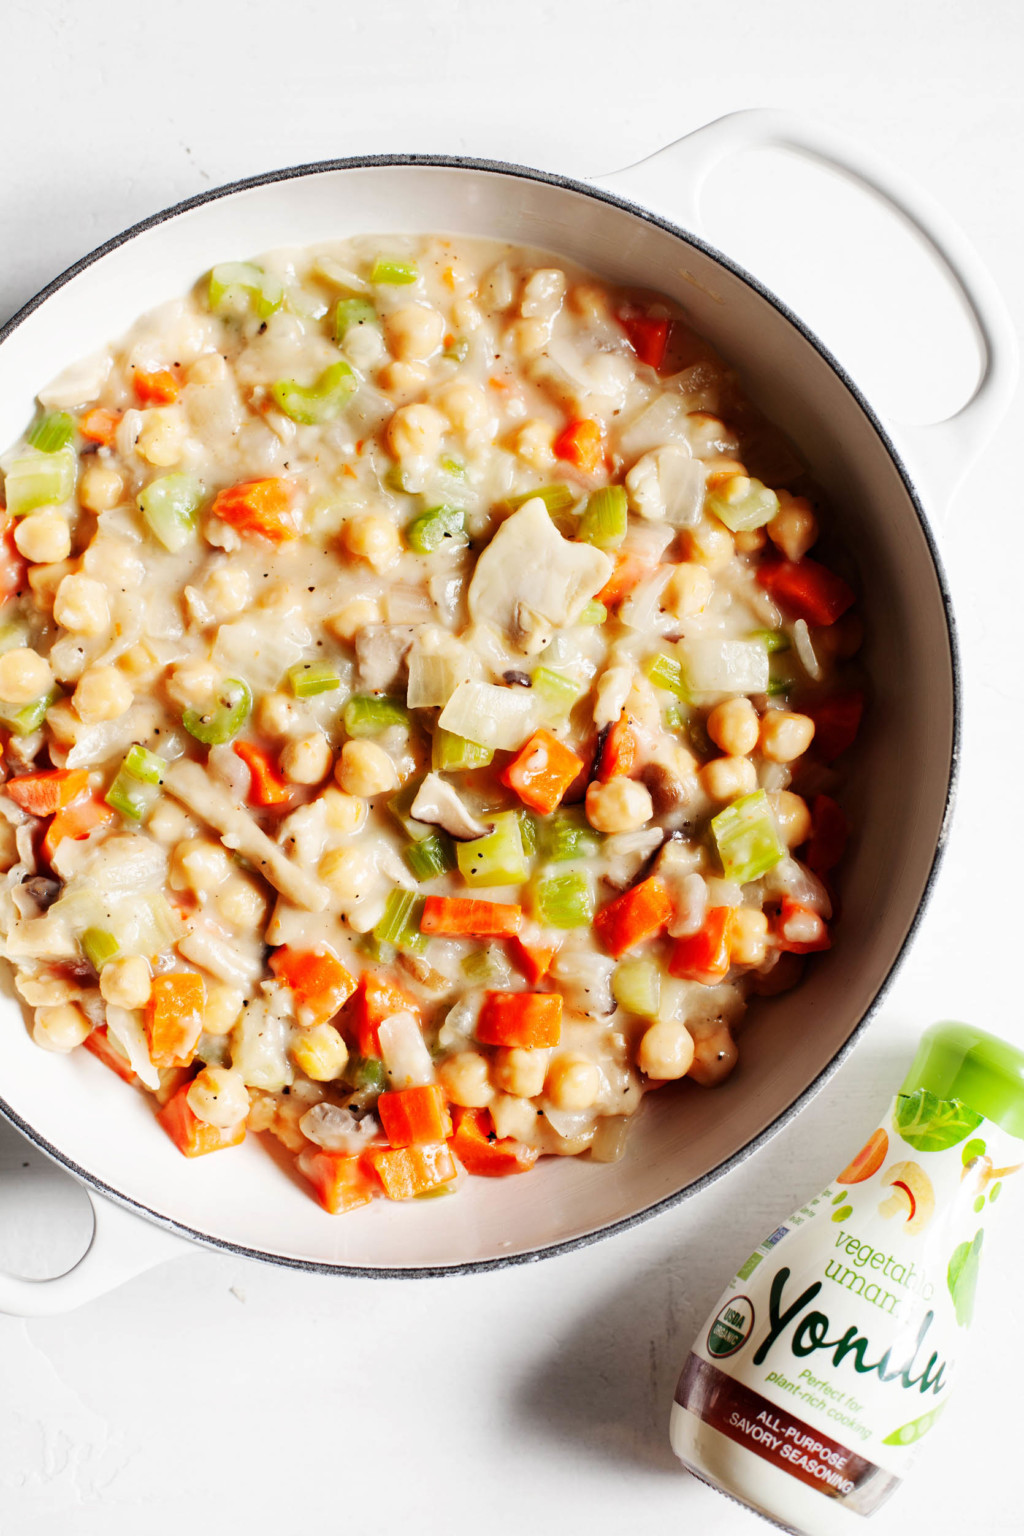 A round casserole dish filled with vegetables and beans in a creamy sauce is accompanied by a liquid seasoning in its packaging.